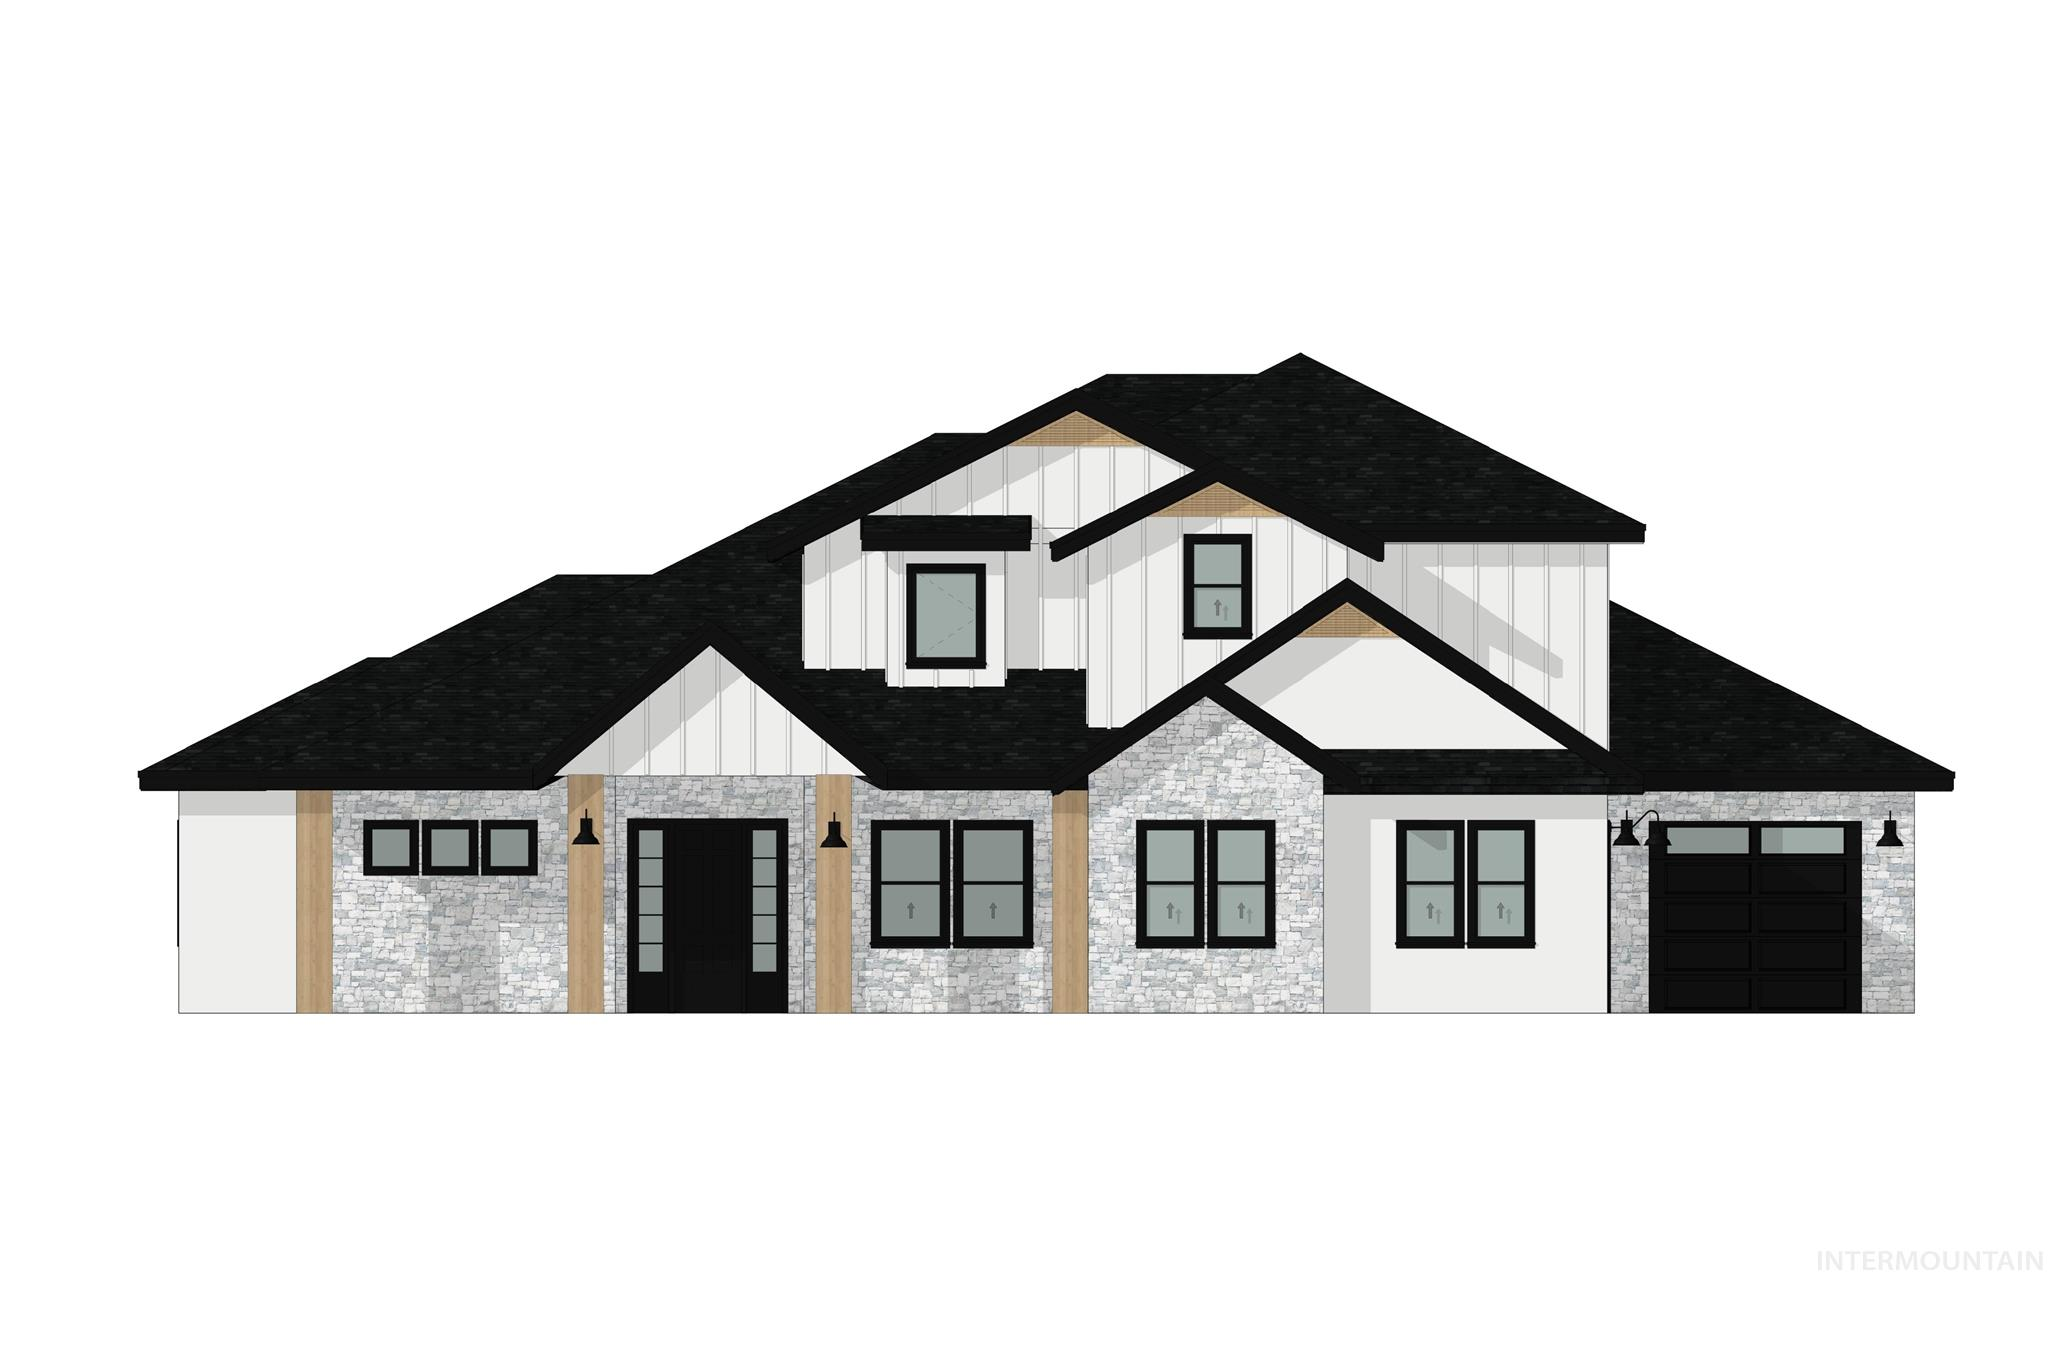 """Presenting the """"Caloy"""" by award winning home builder, Maddyn Homes. Ideal location in estate subdivision East Ridge and close to new community park and...this home is stunning! Custom touches and high end finishes throughout. 4900 total sq ft includes 1613 sq ft unfinished basement. This high performance home has too many energy details to list. Premier home warranty. Photos similar. *VISIT OUR MODEL* @ 3849 Wellhouse in Eagle by appointment or **OPEN HOUSE 4/24 & 4/25 1:00-4:00**"""